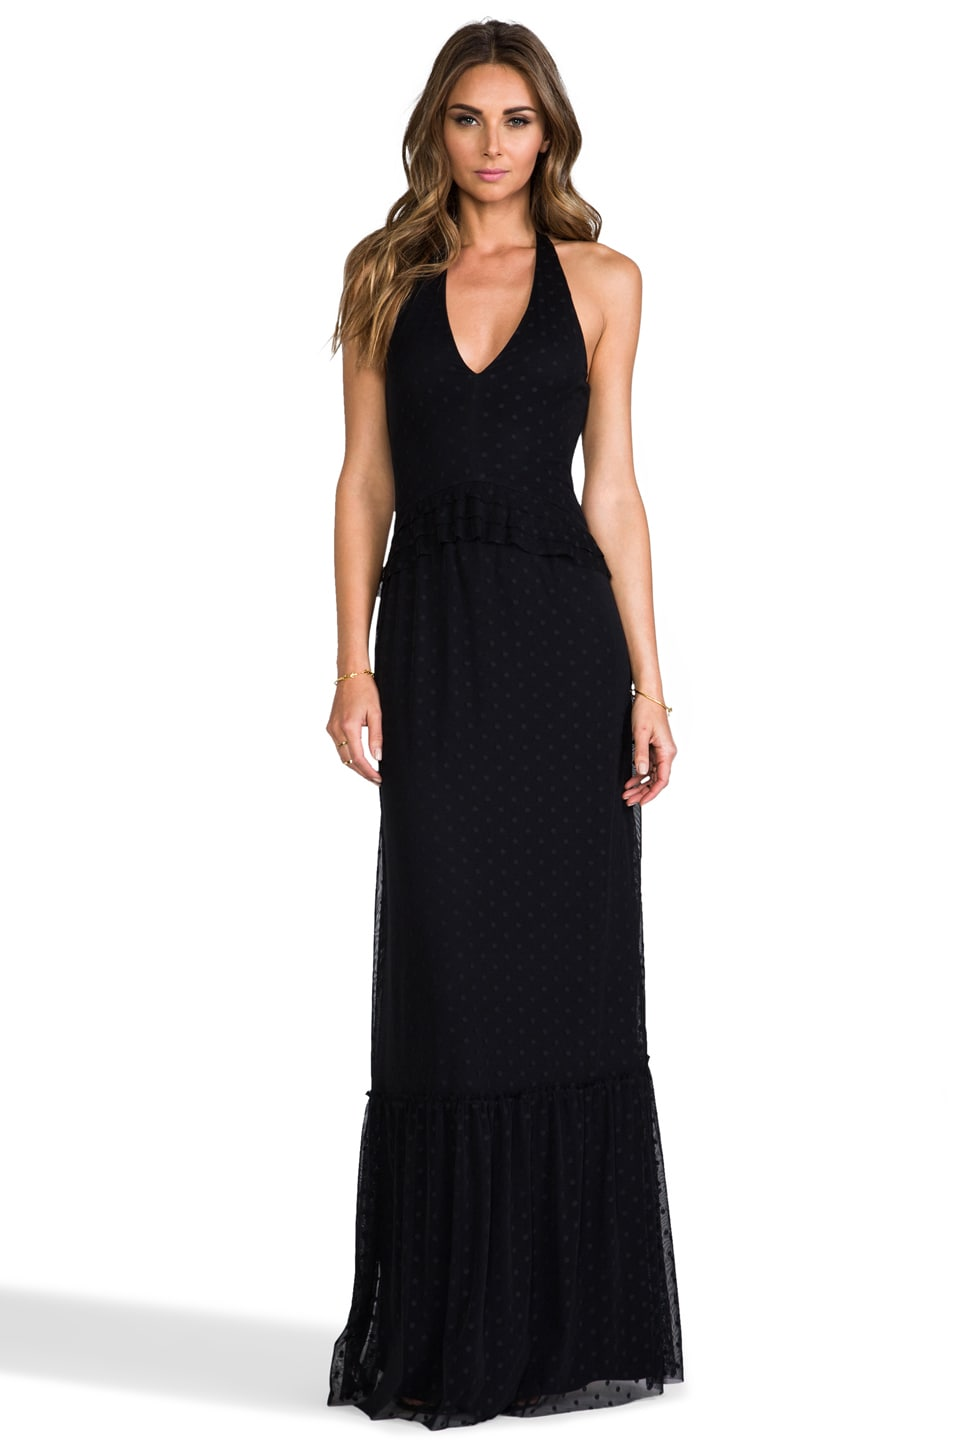 Paper Crown by Lauren Conrad Marilyn Maxi Dress in Black Polka